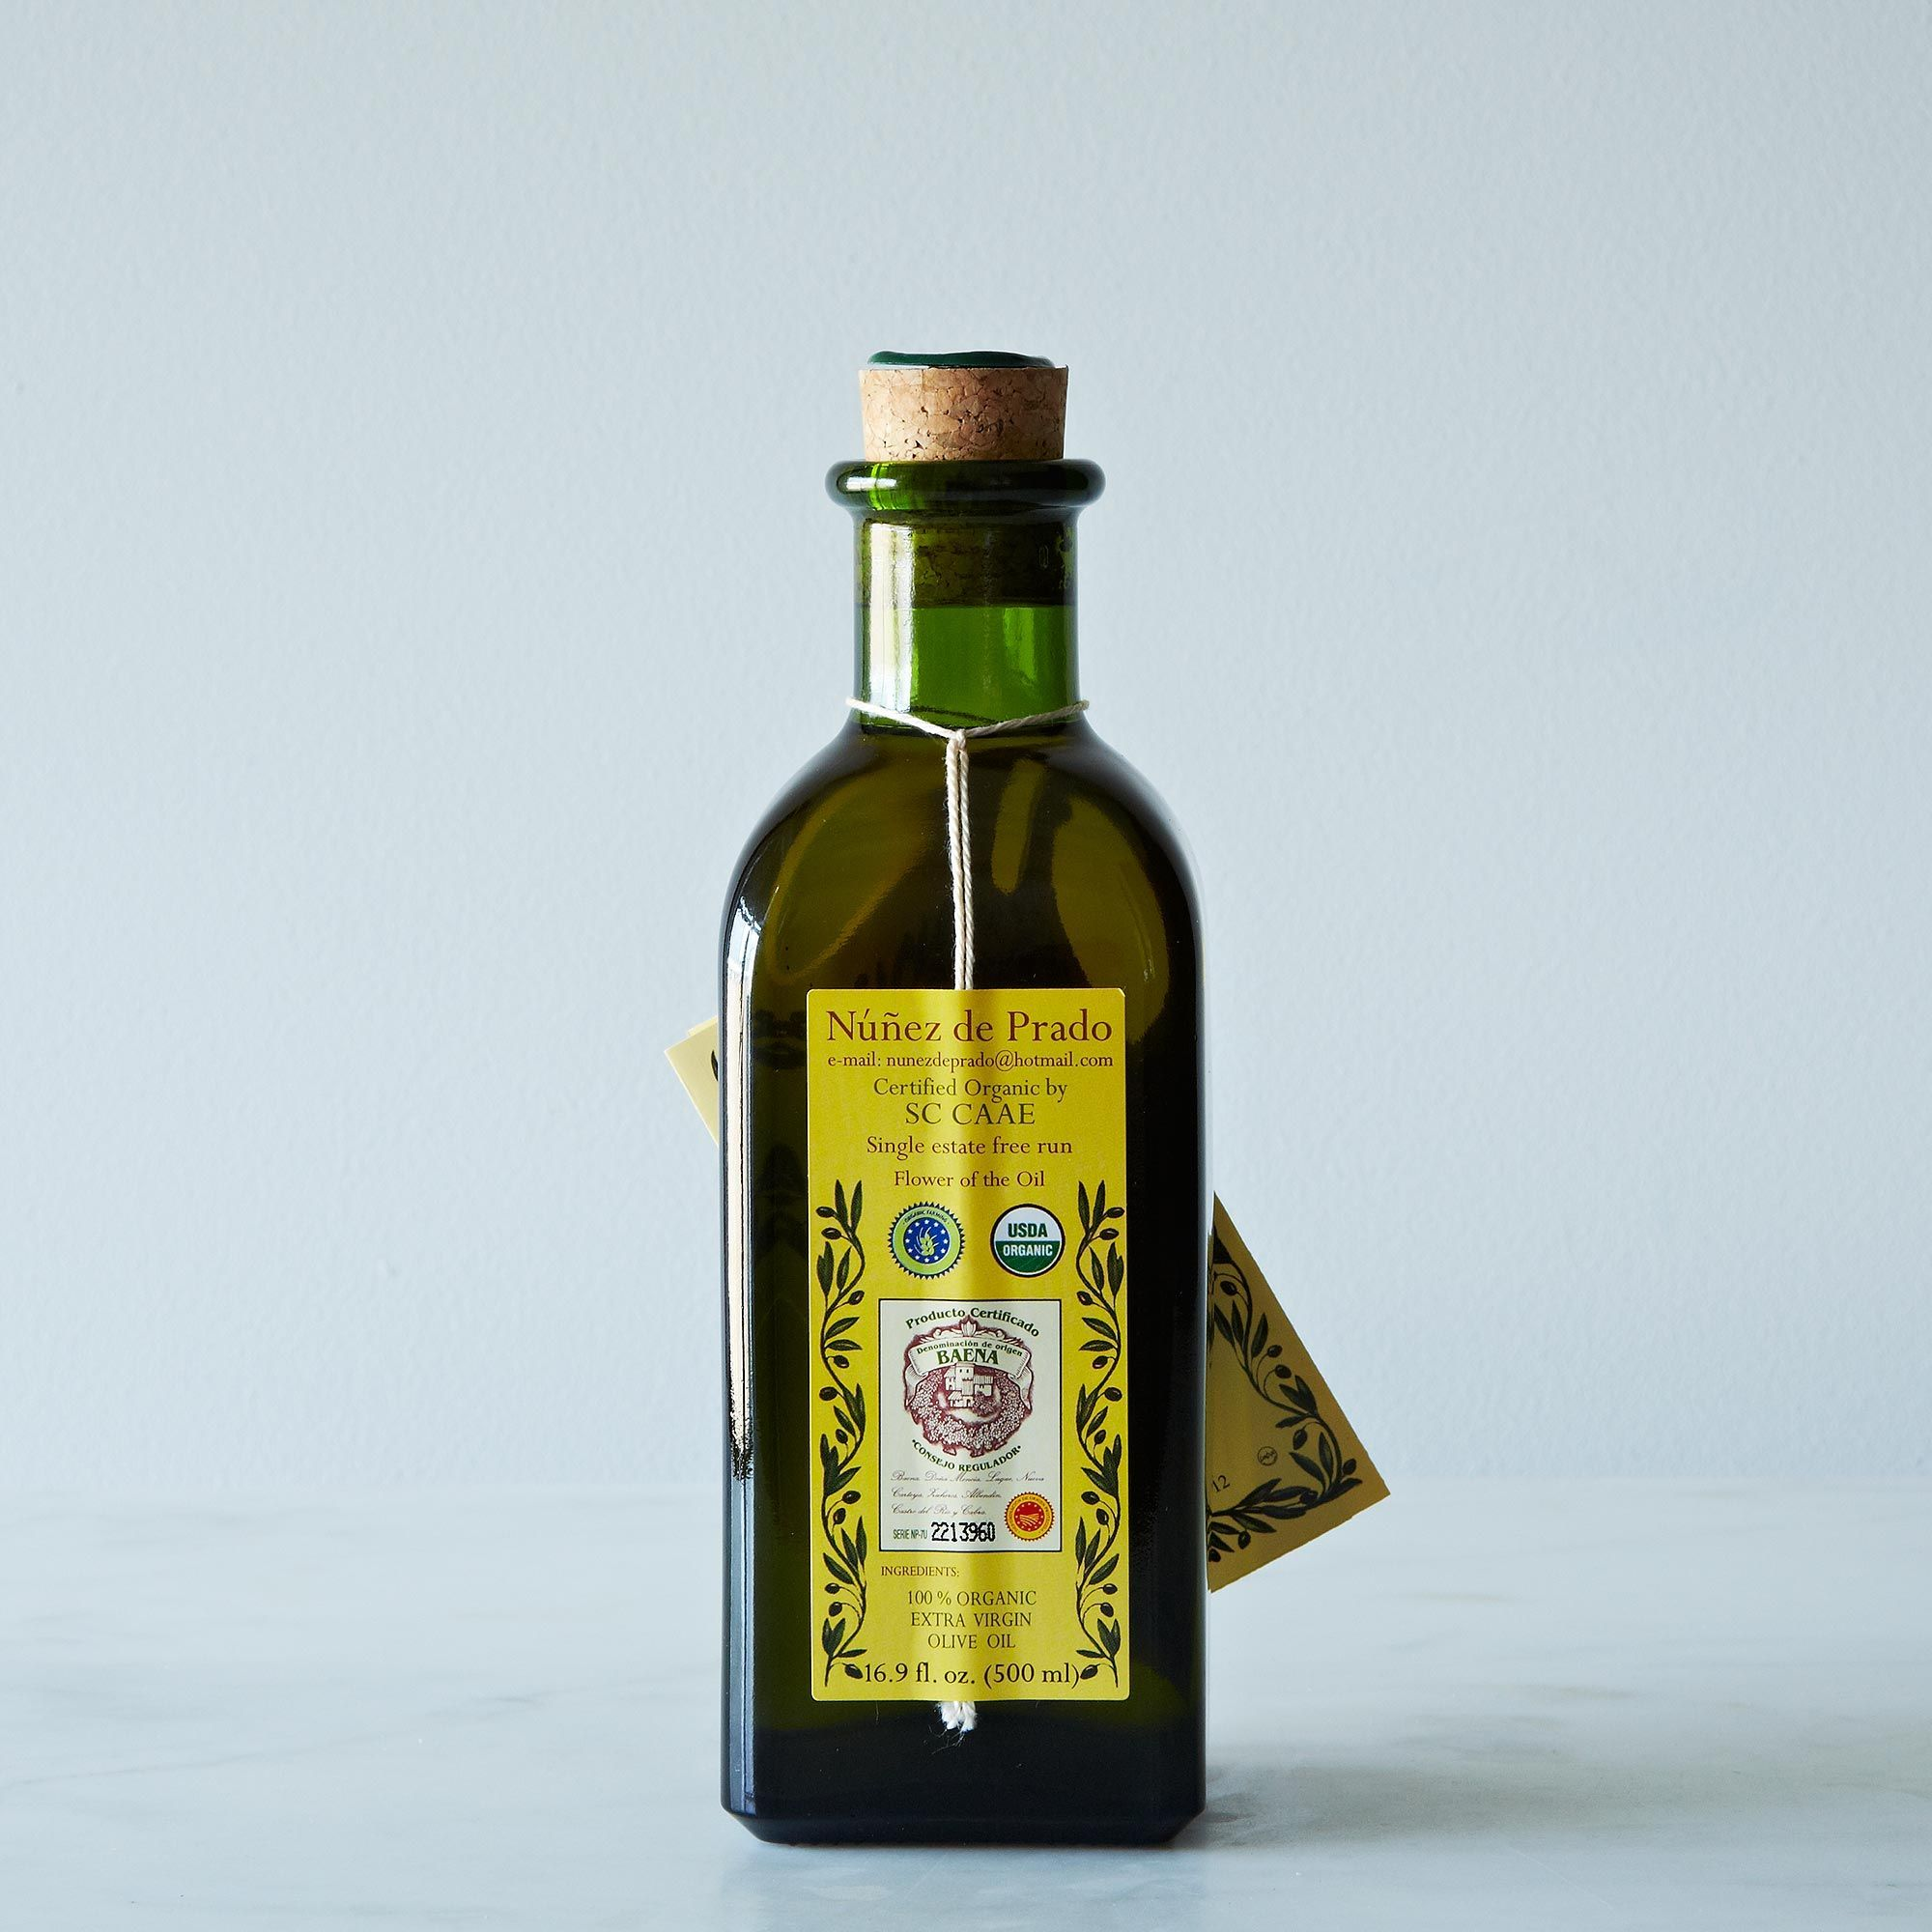 F6421470 3331 497c a50b 6e268042b842  2013 0723 the rogers collection nunez de prado flor de aceite olive oil 002